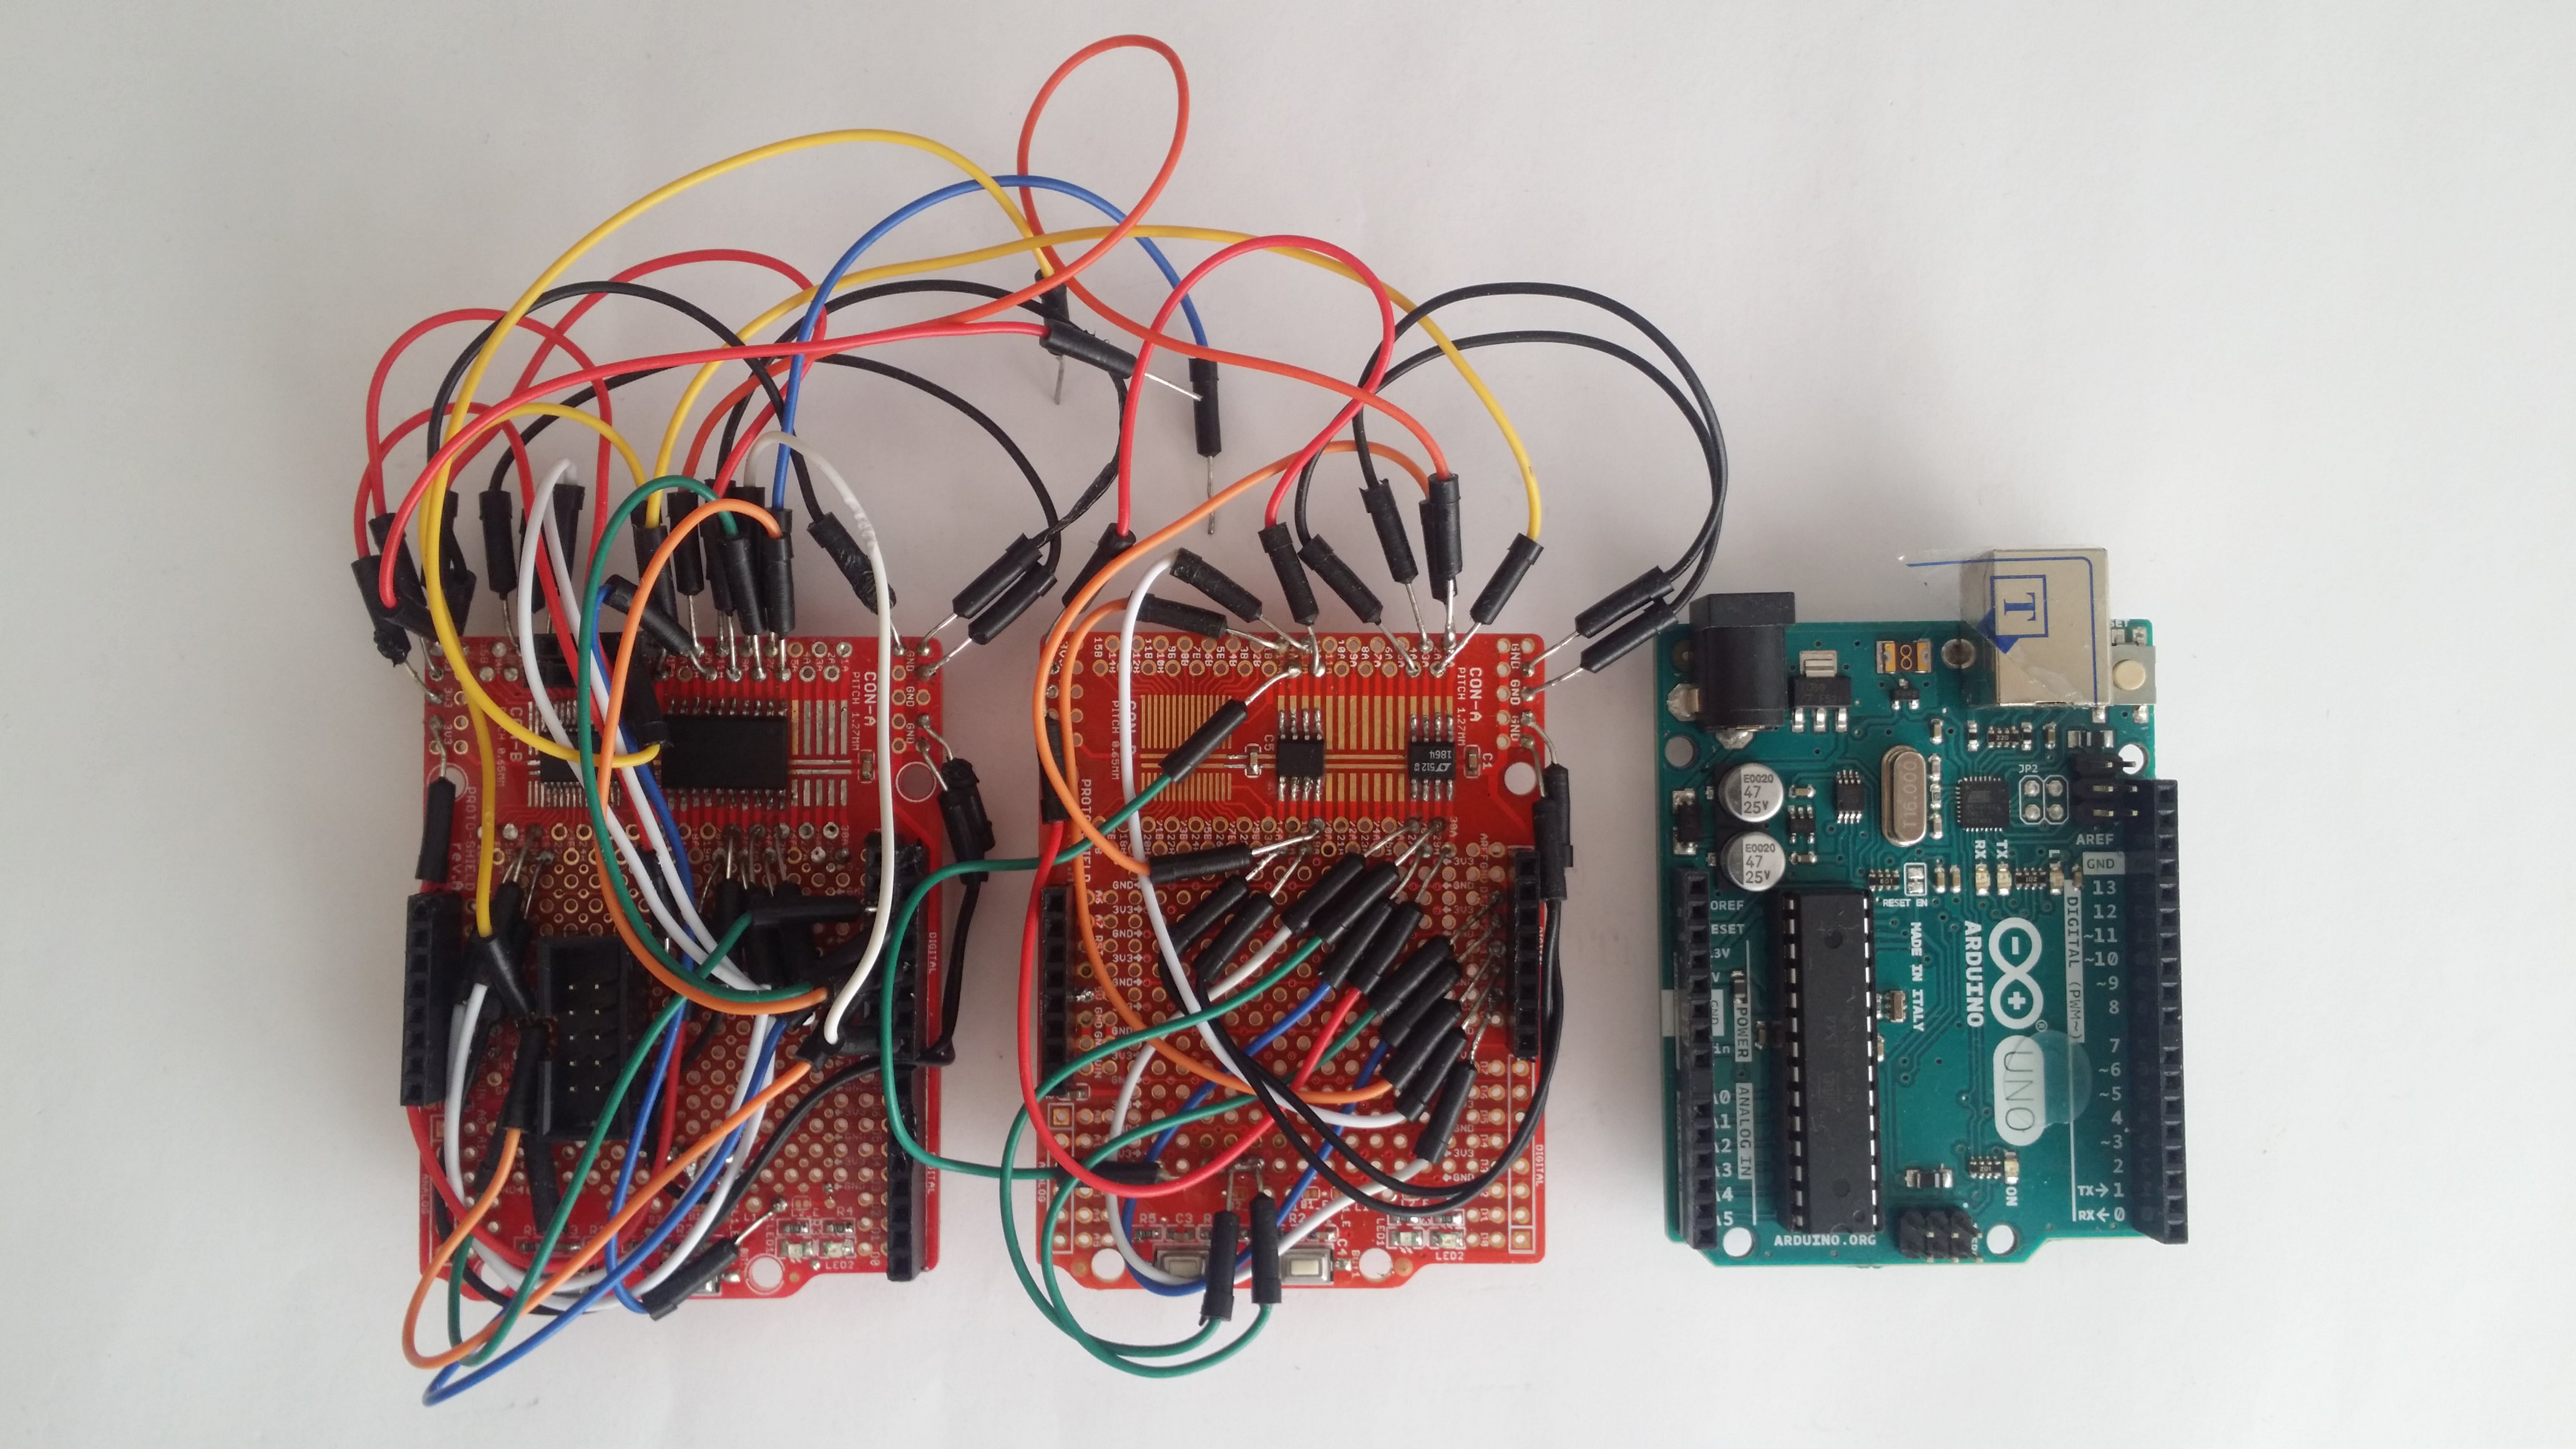 The 16ch board disassembled and the Arduino Uno